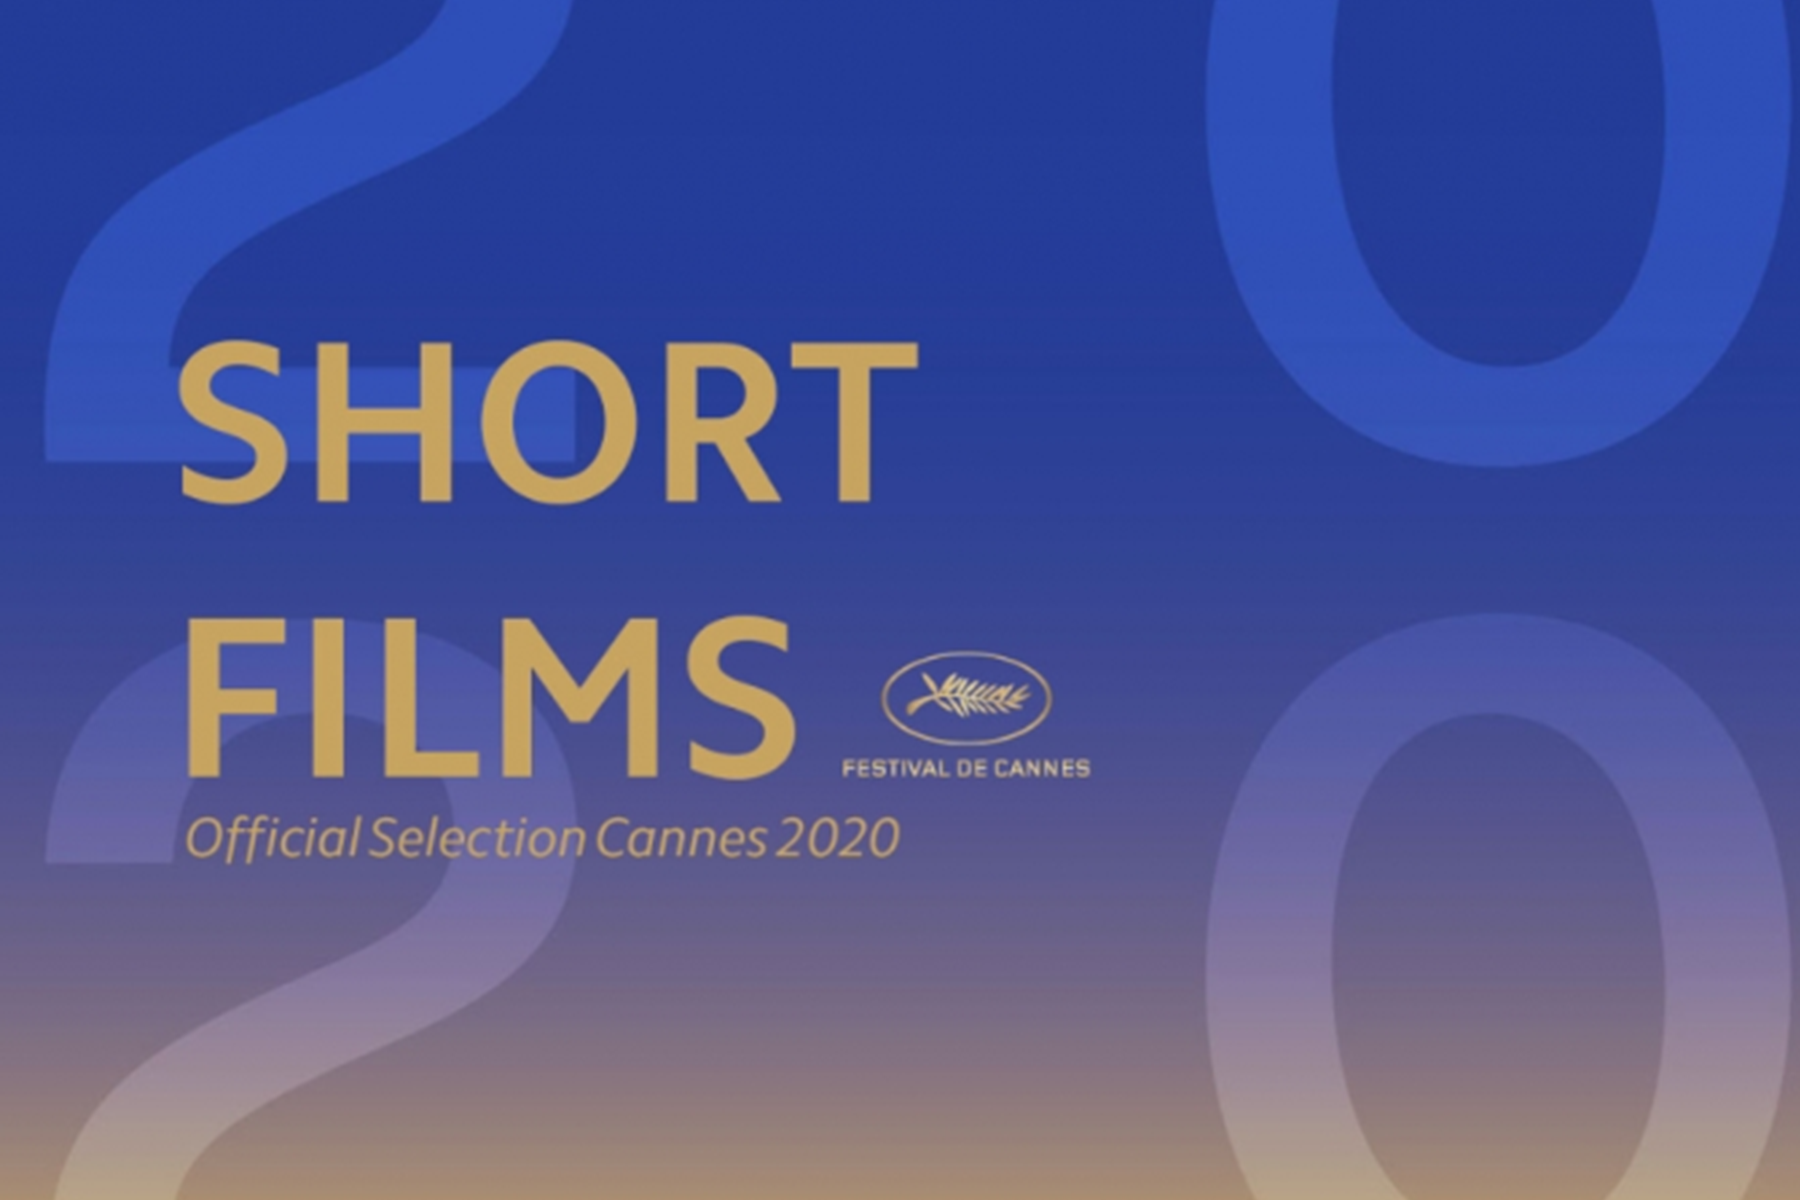 Cannes 2020: The List Of 11 Nominees And Who Should Win The Palme d'Or